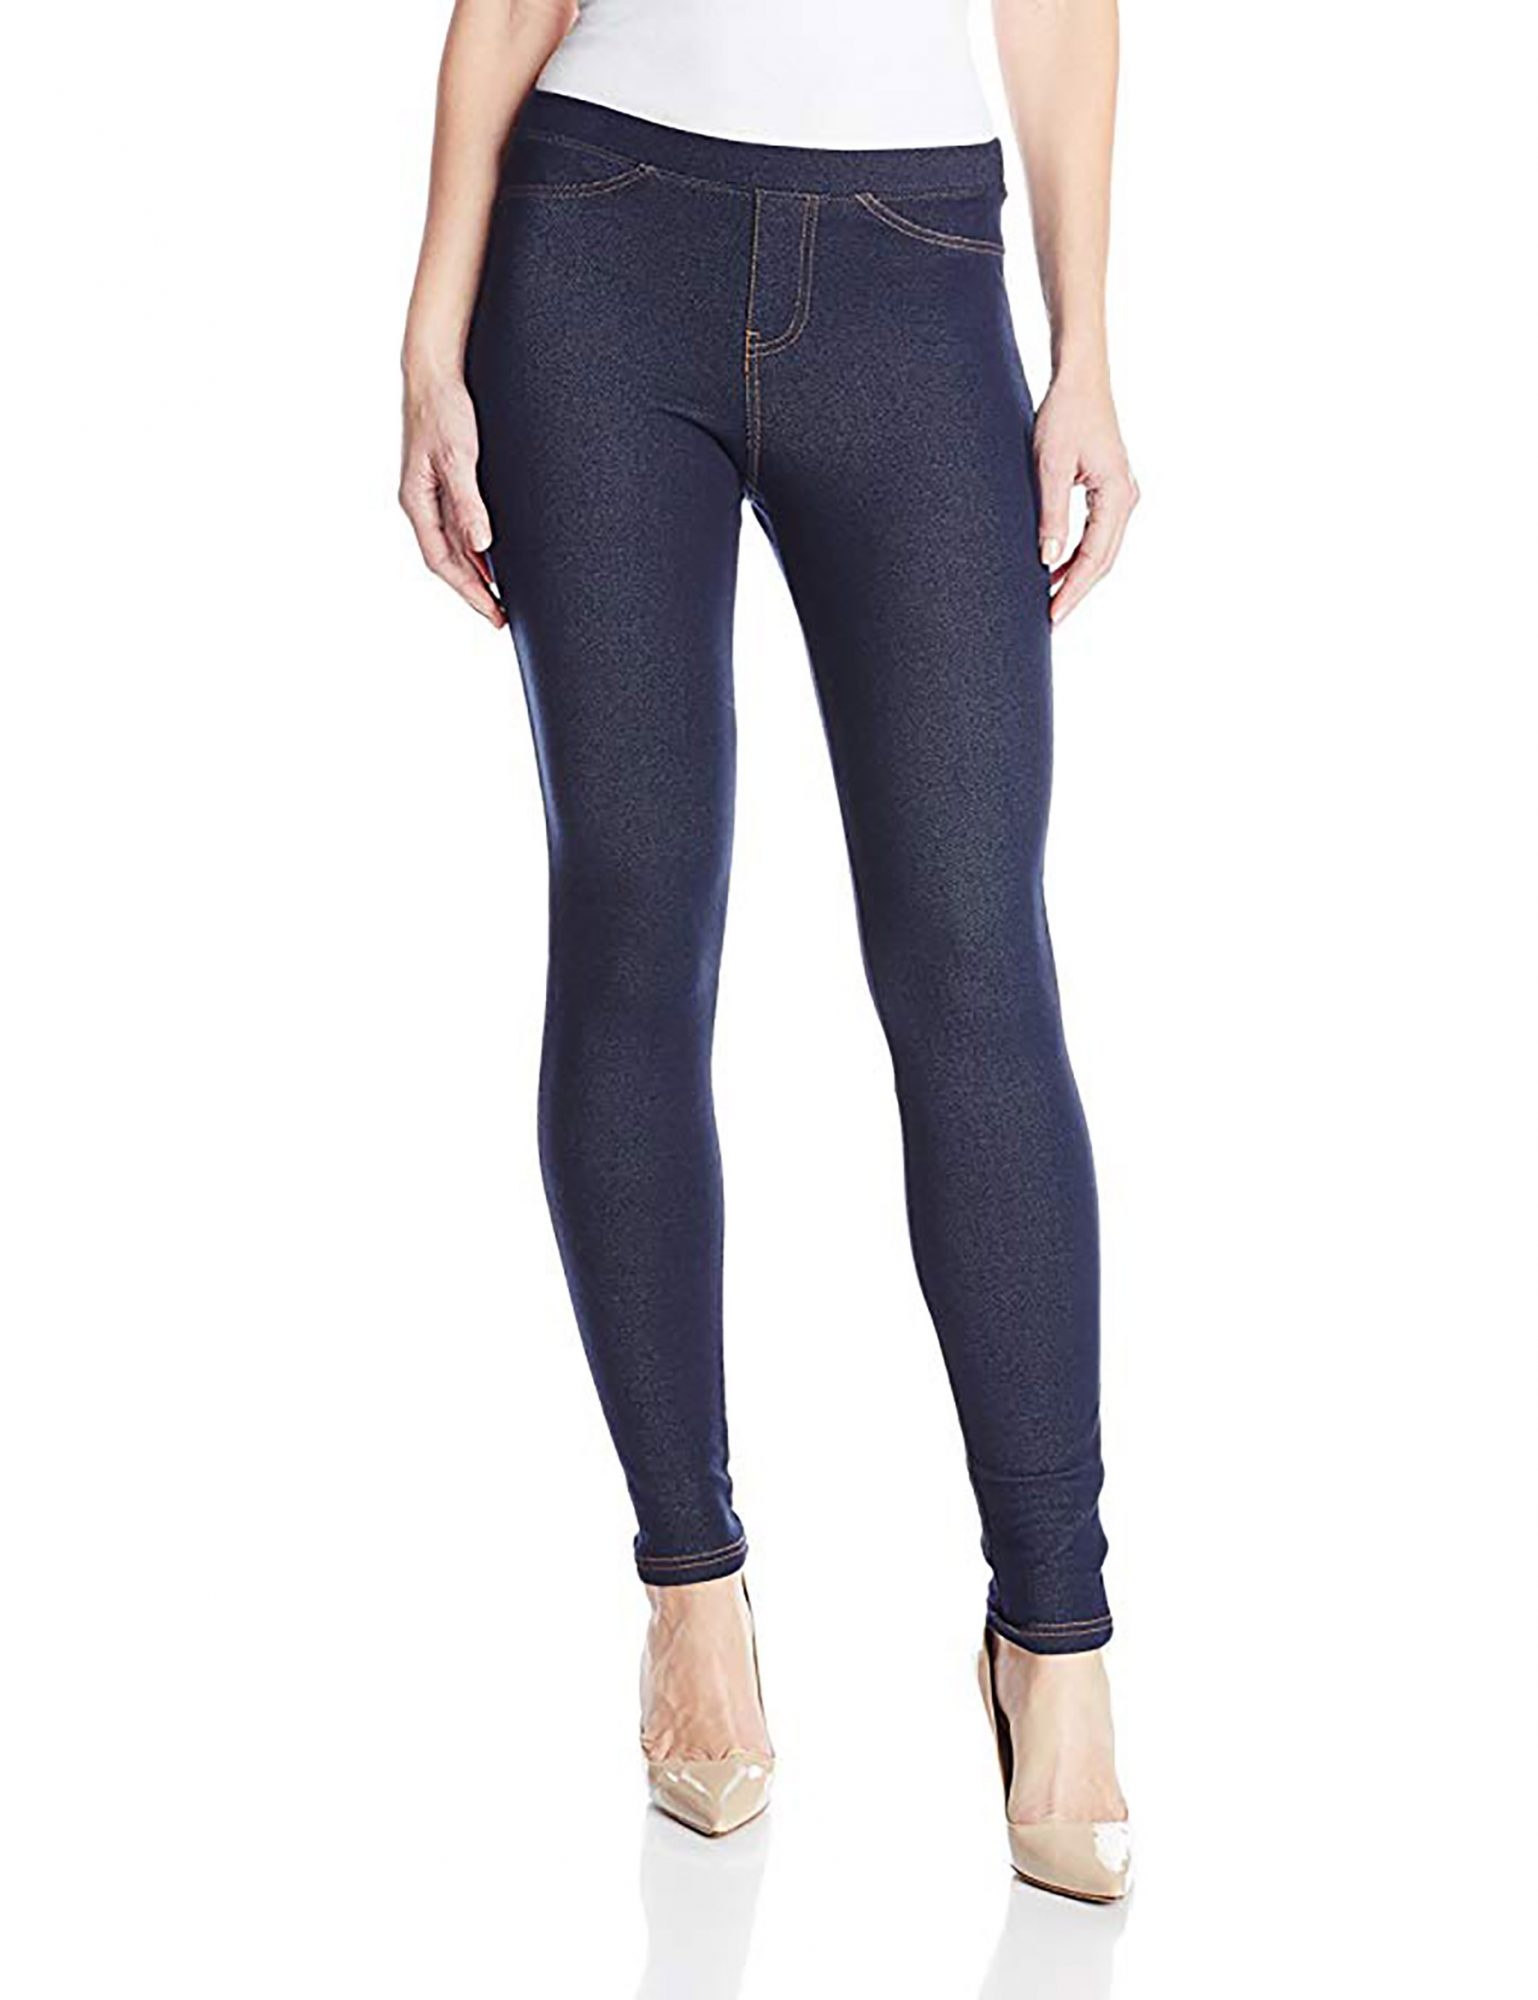 No Nonsense Women's Denim Leggings with Pockets